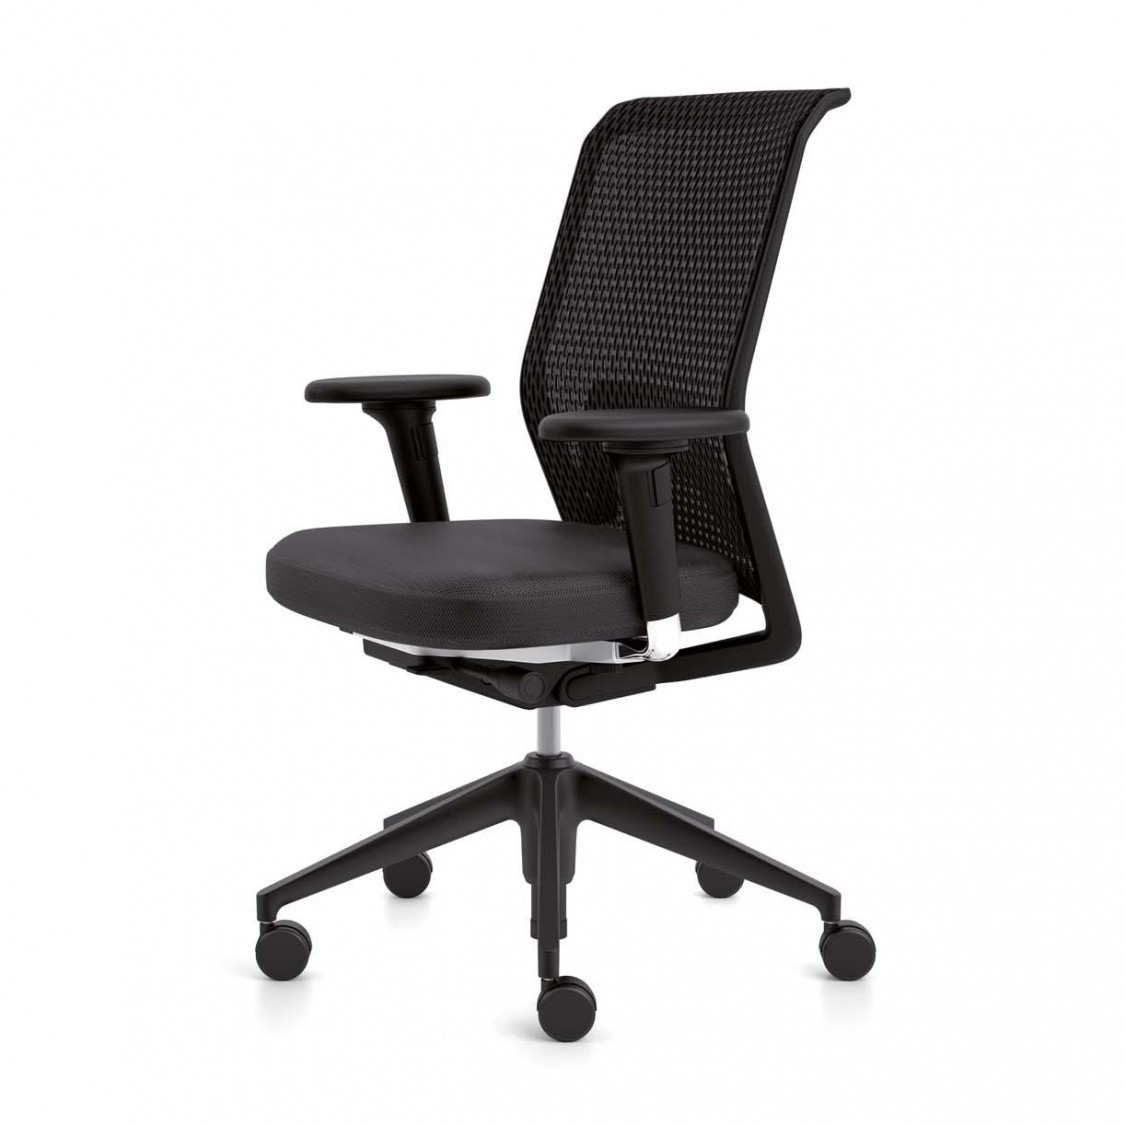 Vitra Office Chair Vitra Id Mesh Office Chair